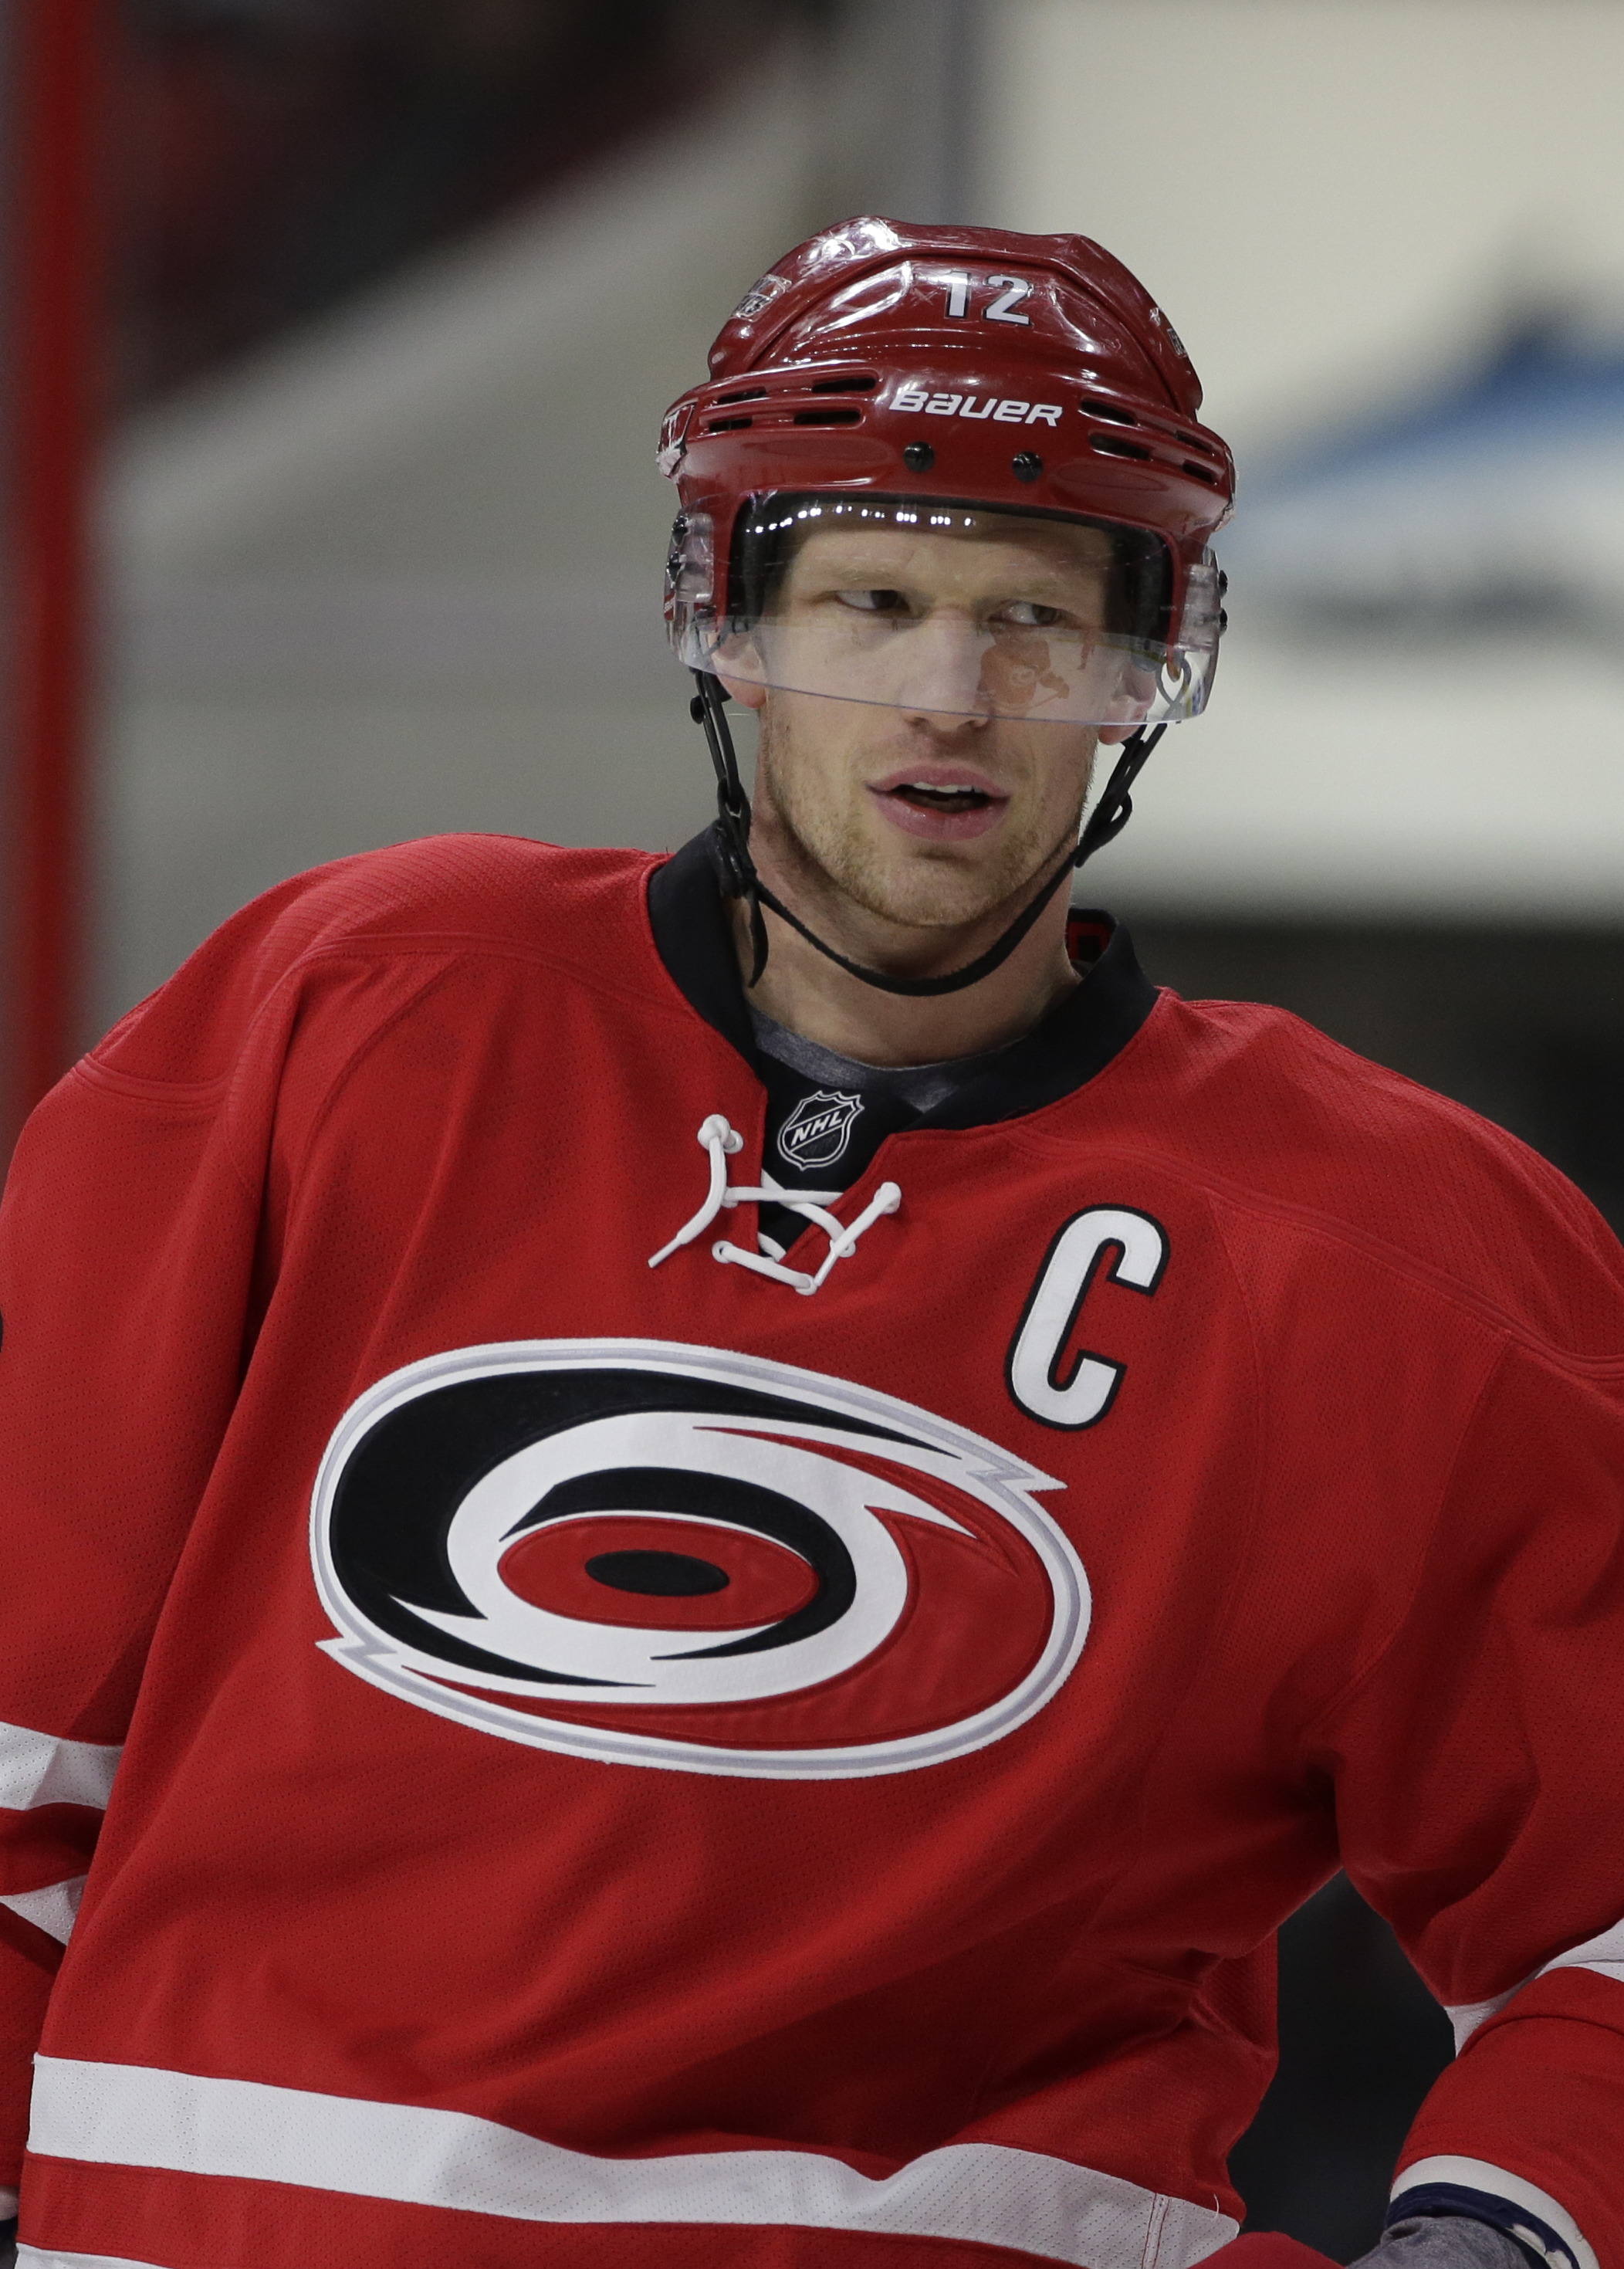 Carolina Hurricanes' Eric Staal (12) waits to go into the game during the first period of an NHL hockey game against the Boston Bruins  in Raleigh, N.C., Friday, Feb. 26, 2016. (AP Photo/Gerry Broome)